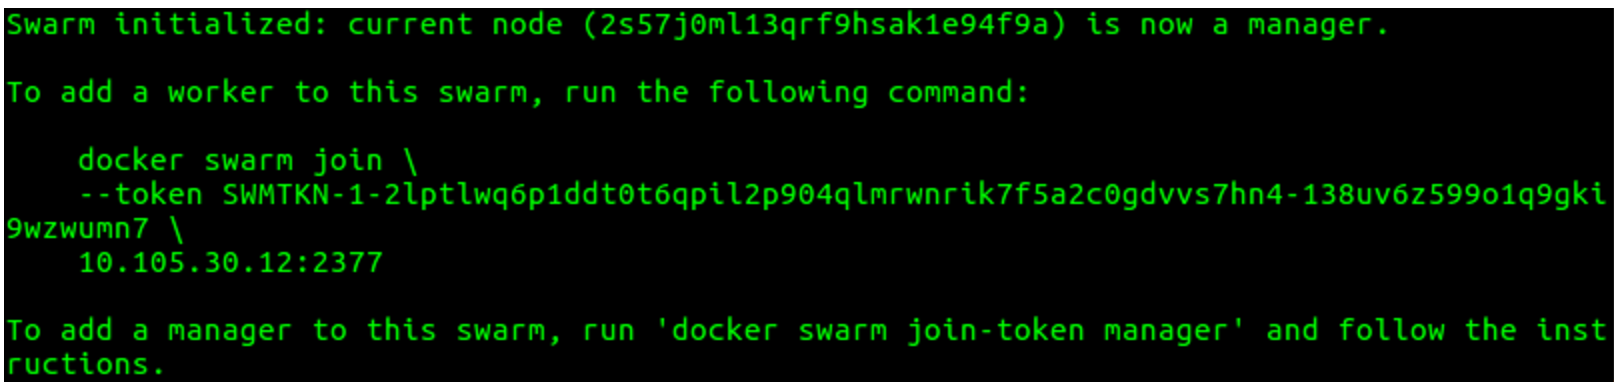 How to Create a Docker Swarm on CenturyLink Cloud - CenturyLink